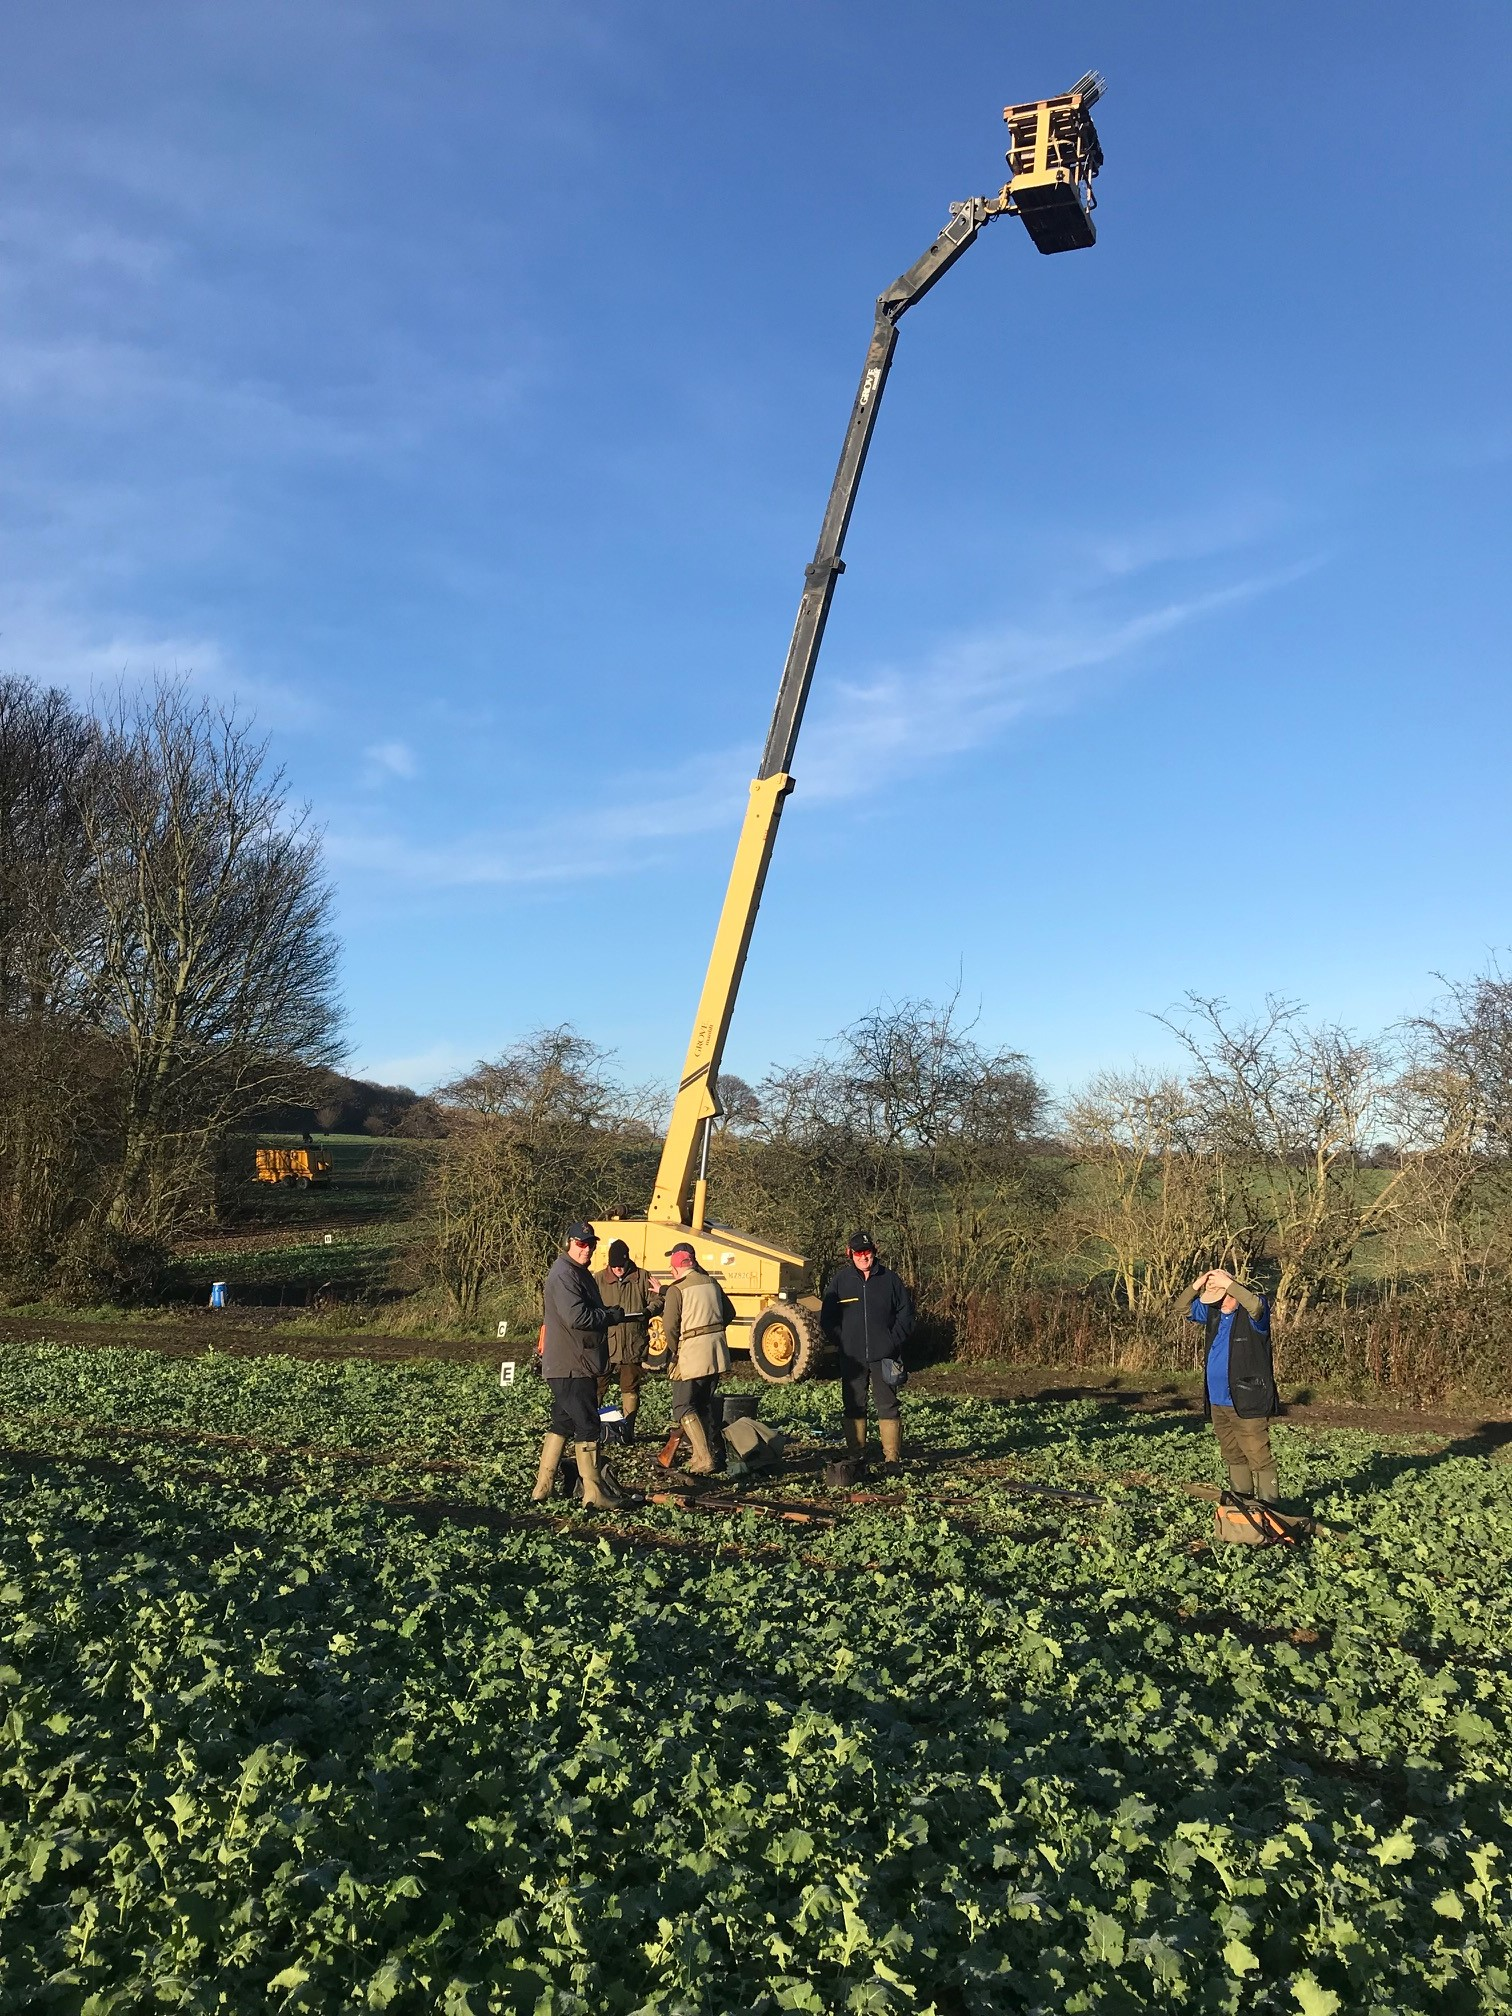 Grove MZ82C 25 Metres Telescopic Boom Lift for clay pigeon shooting